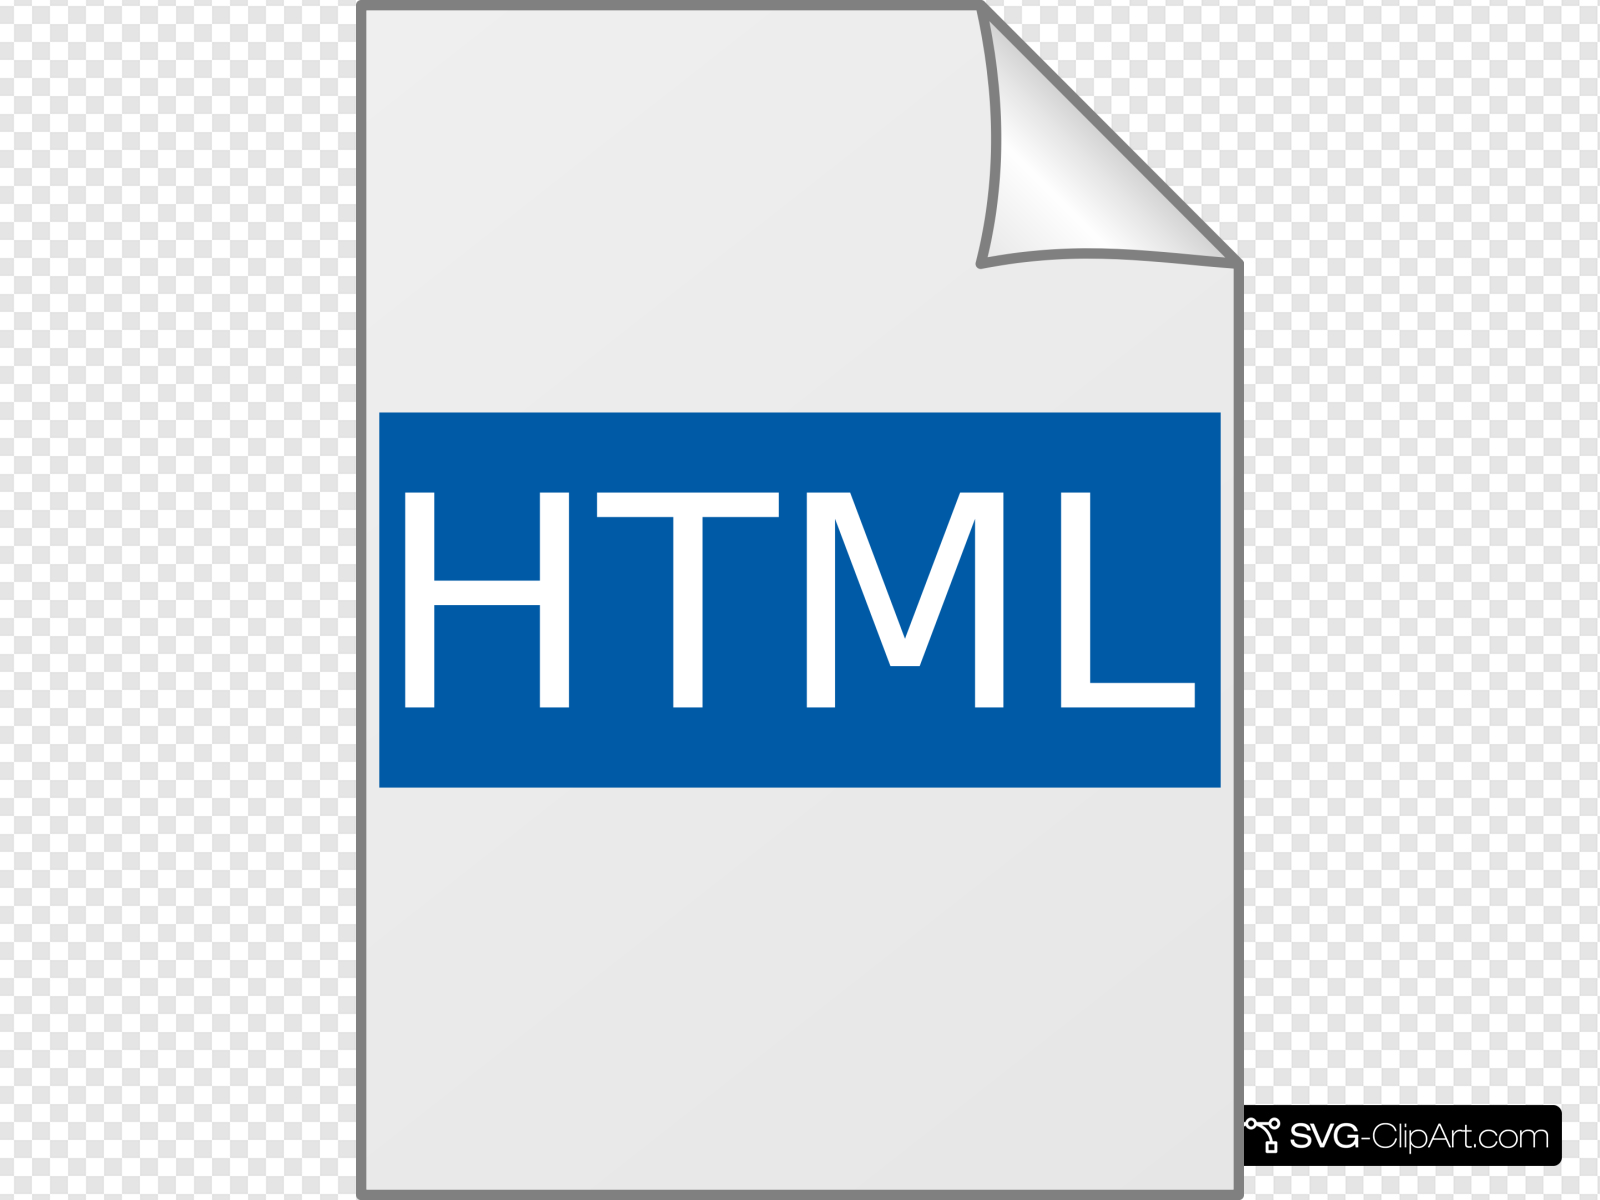 Html Icon Clip art, Icon and SVG.